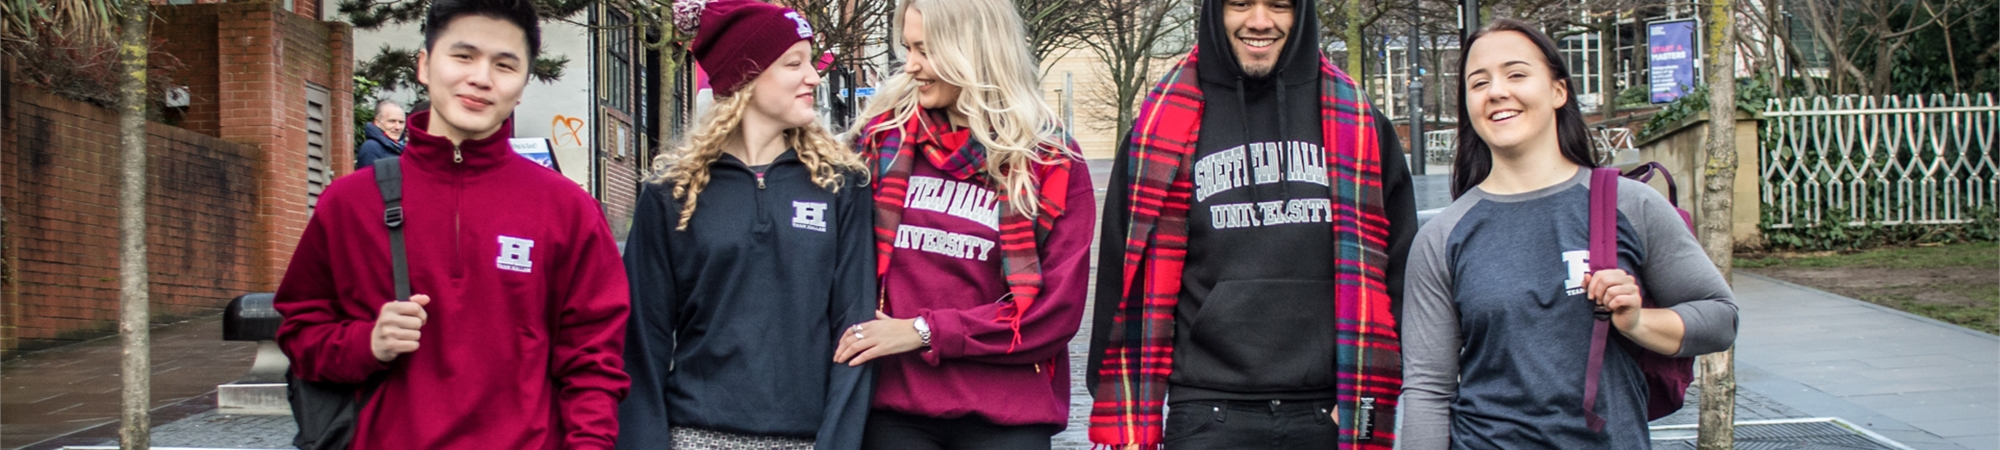 Get your branded Sheffield Hallam clothing, tickets and accessories at the click of a button with our Online Shop